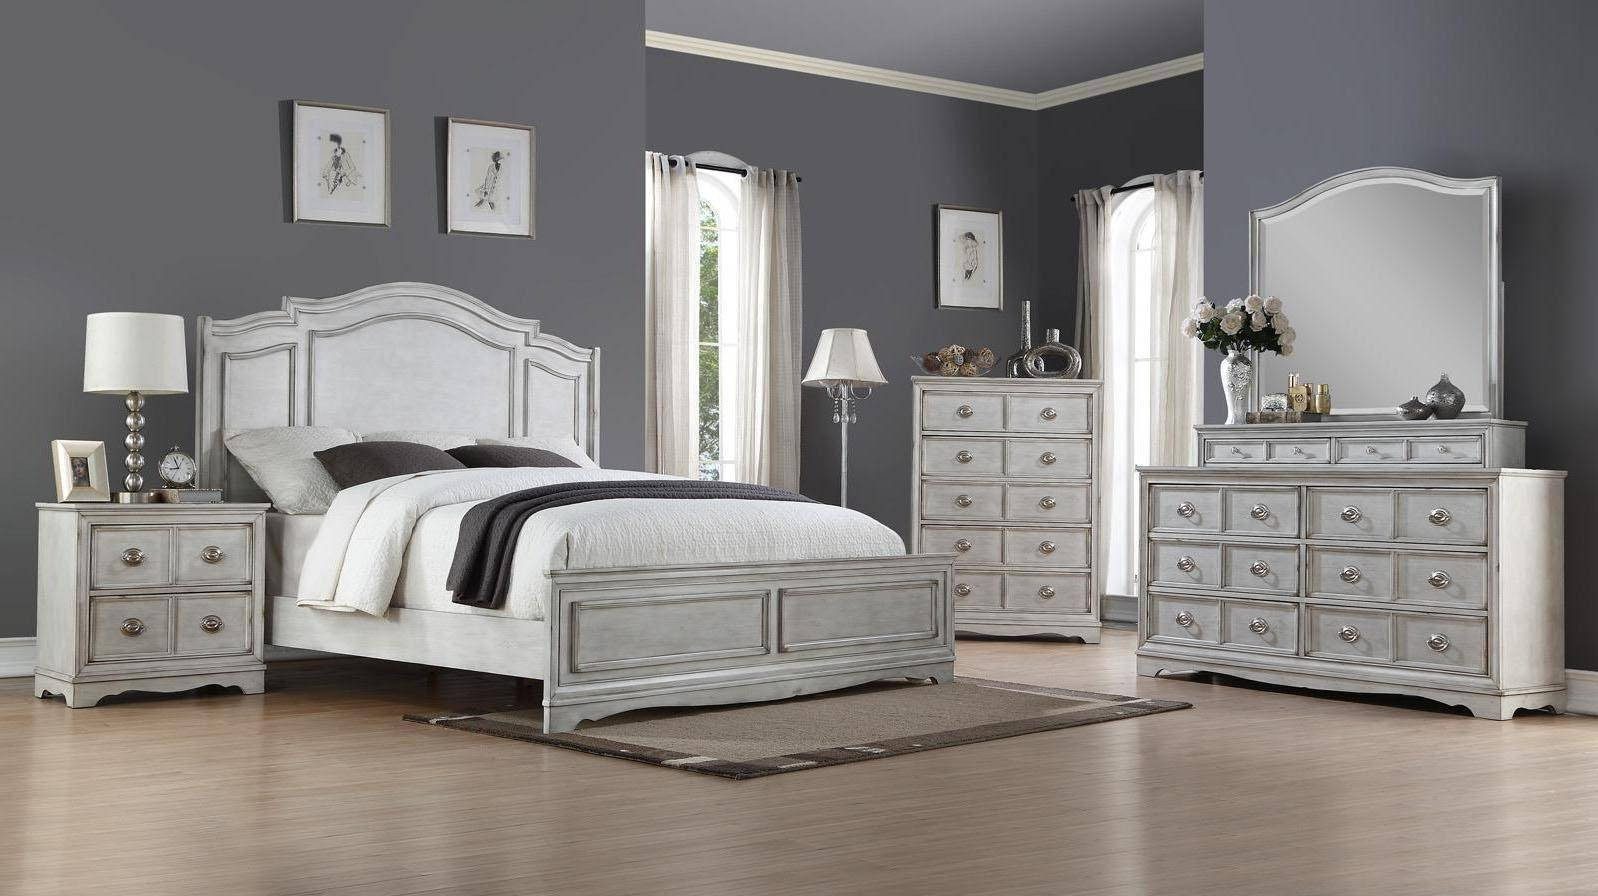 Distressed White Bedroom Furniture Awesome Bernards Furniture toulon Antique White 1616 105 Queen